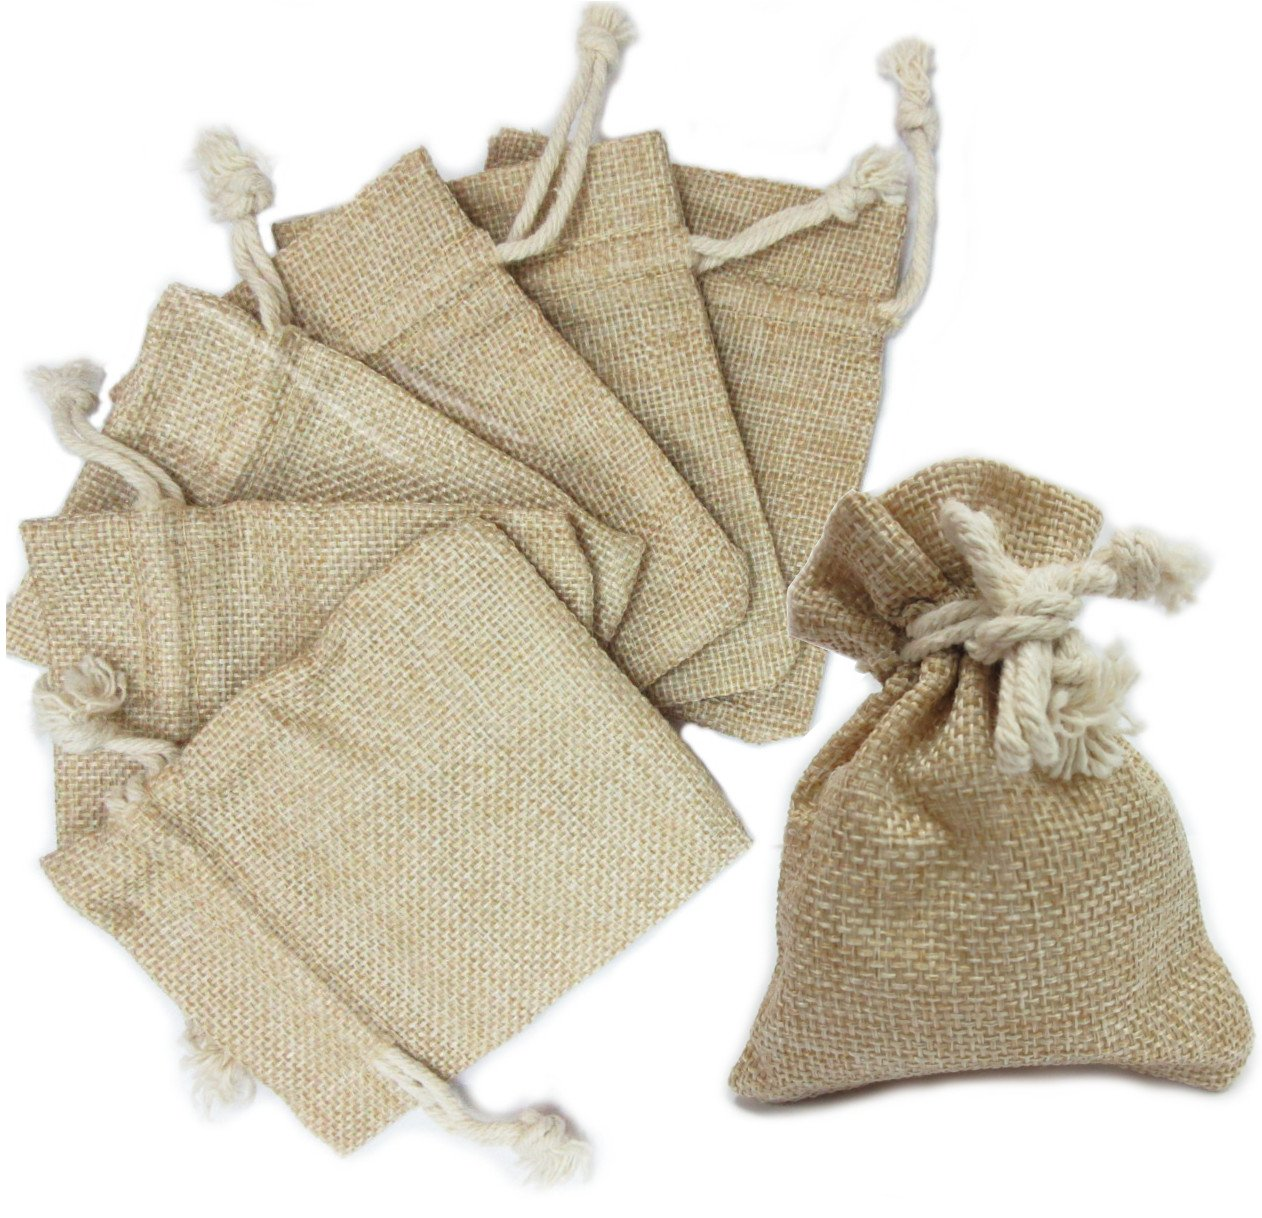 Ovee Lando Natural Color Burlap Bag with Drawstring Closure for Arts & Crafts Projects, Gift Packaging, Presents, Snacks & Jewelry (30 Pack) by Ovee Lando (Image #3)